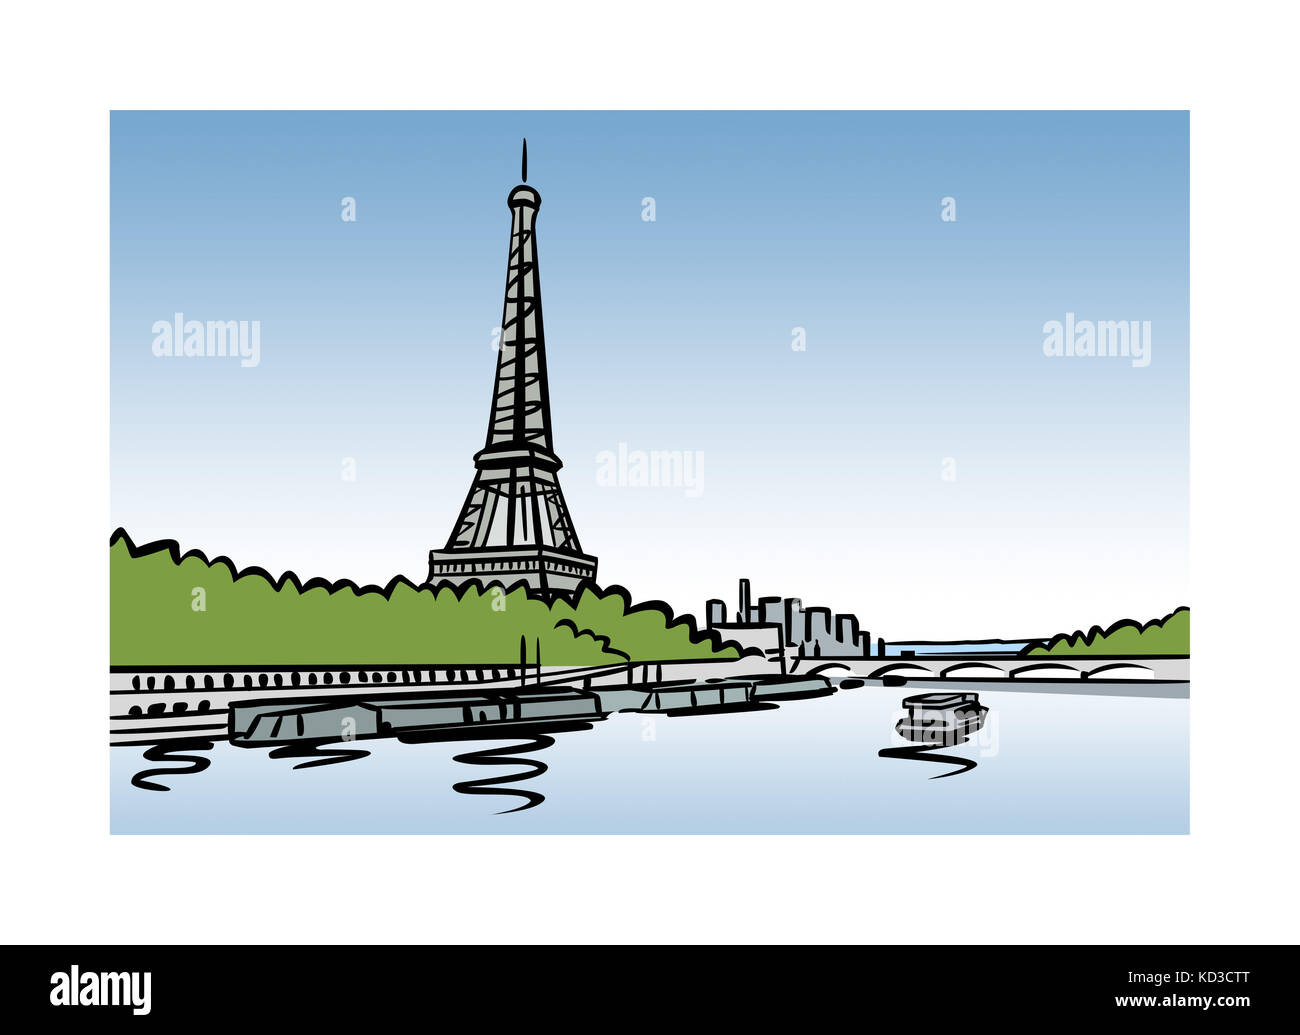 Illustration of the Seine and Eiffel Tower in Paris, France - Stock Image